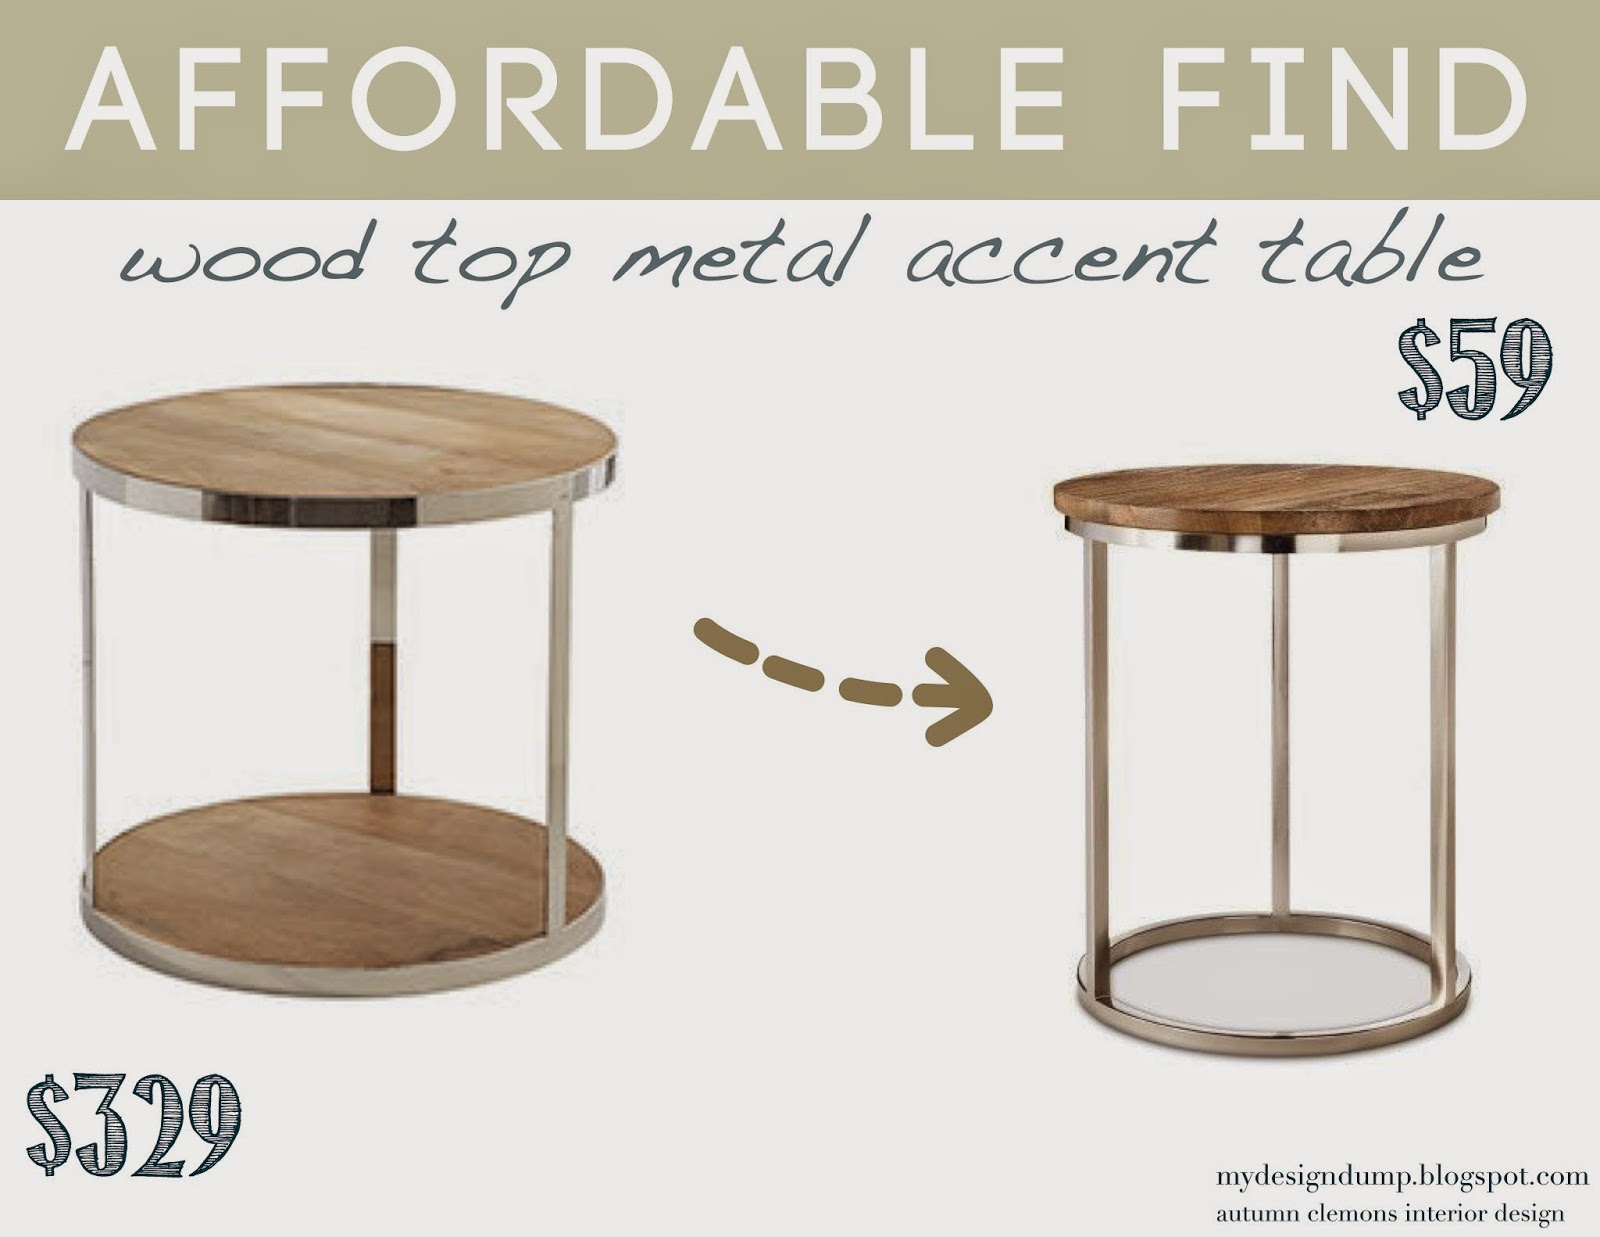 design dump affordable find wood top metal accent table cylinder side currently for with small outside bar furniture parasol stand cream colored tables covers outdoor unique